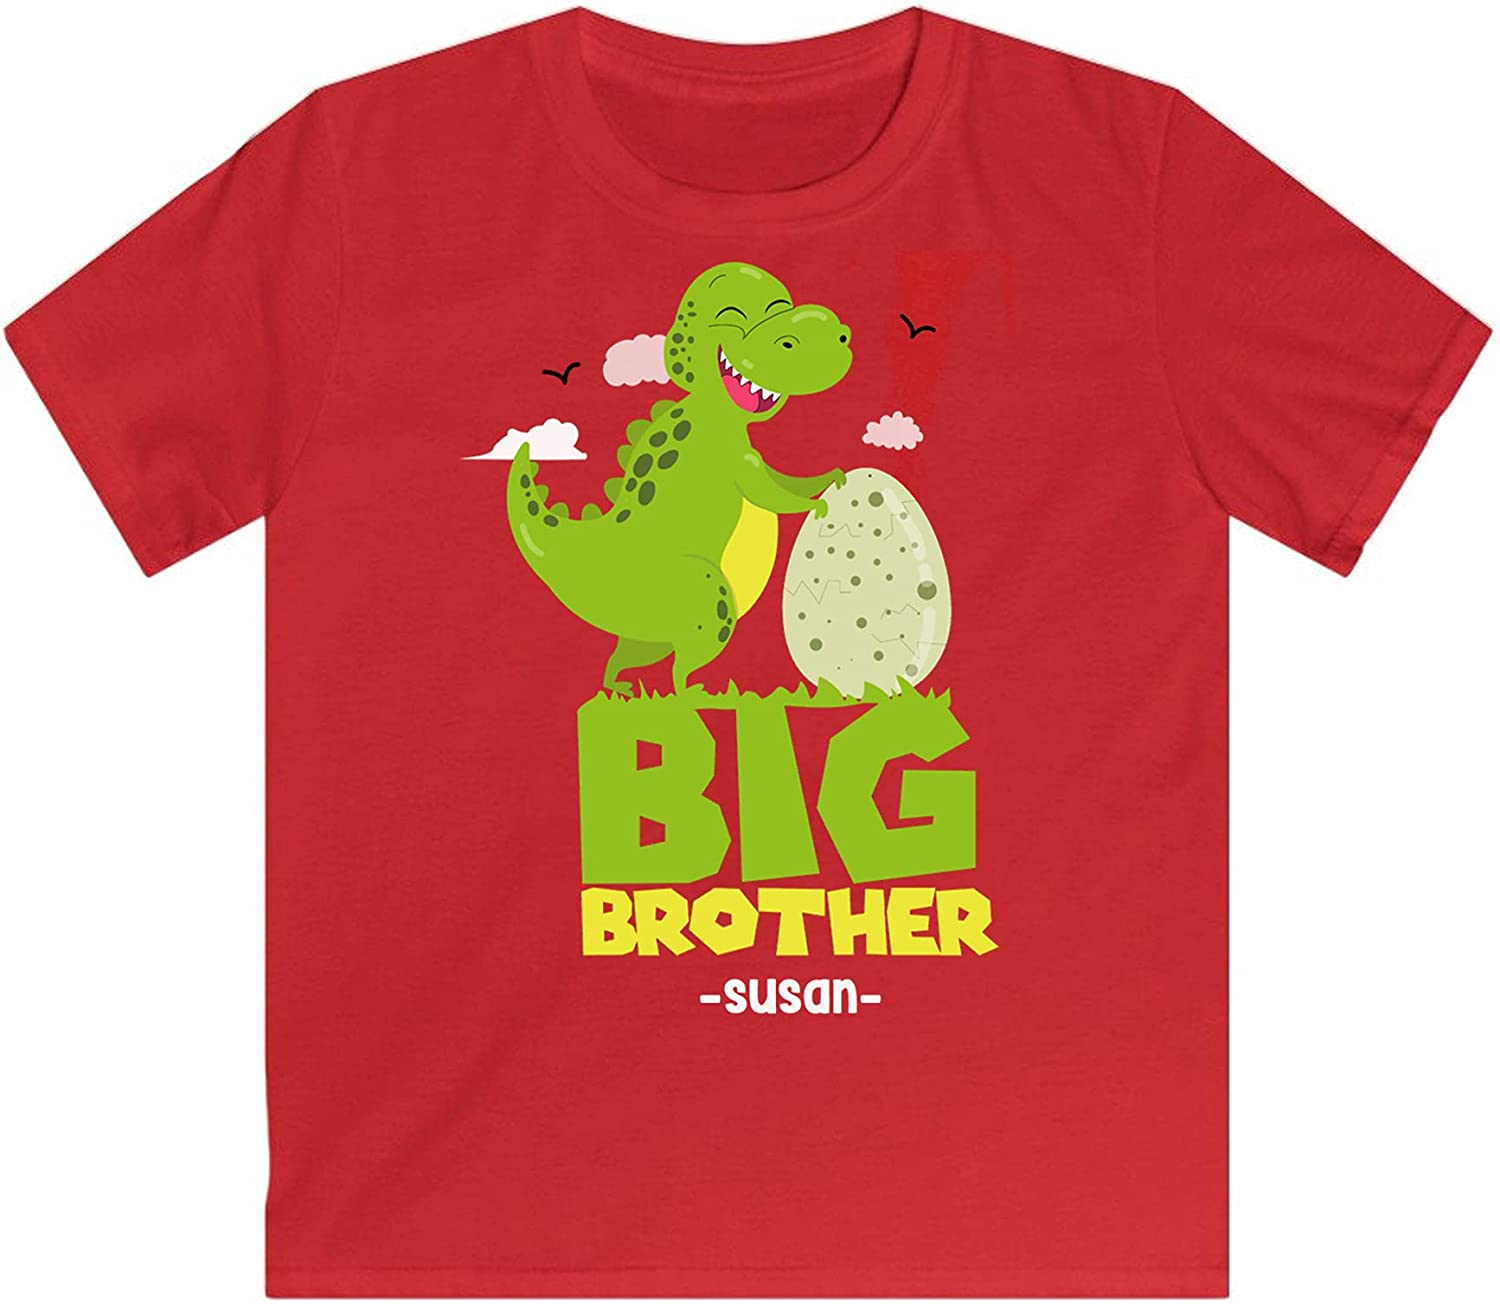 Personalised T Rex Dinosaur Toddler Shirt Dinosaur Shirt for Grandson Clothing Bro Tshirt for Kids Birthday Gifts for Brother Brother Collection Toddlers Shirts Gifts for Boys I'm Big Brother Shirt